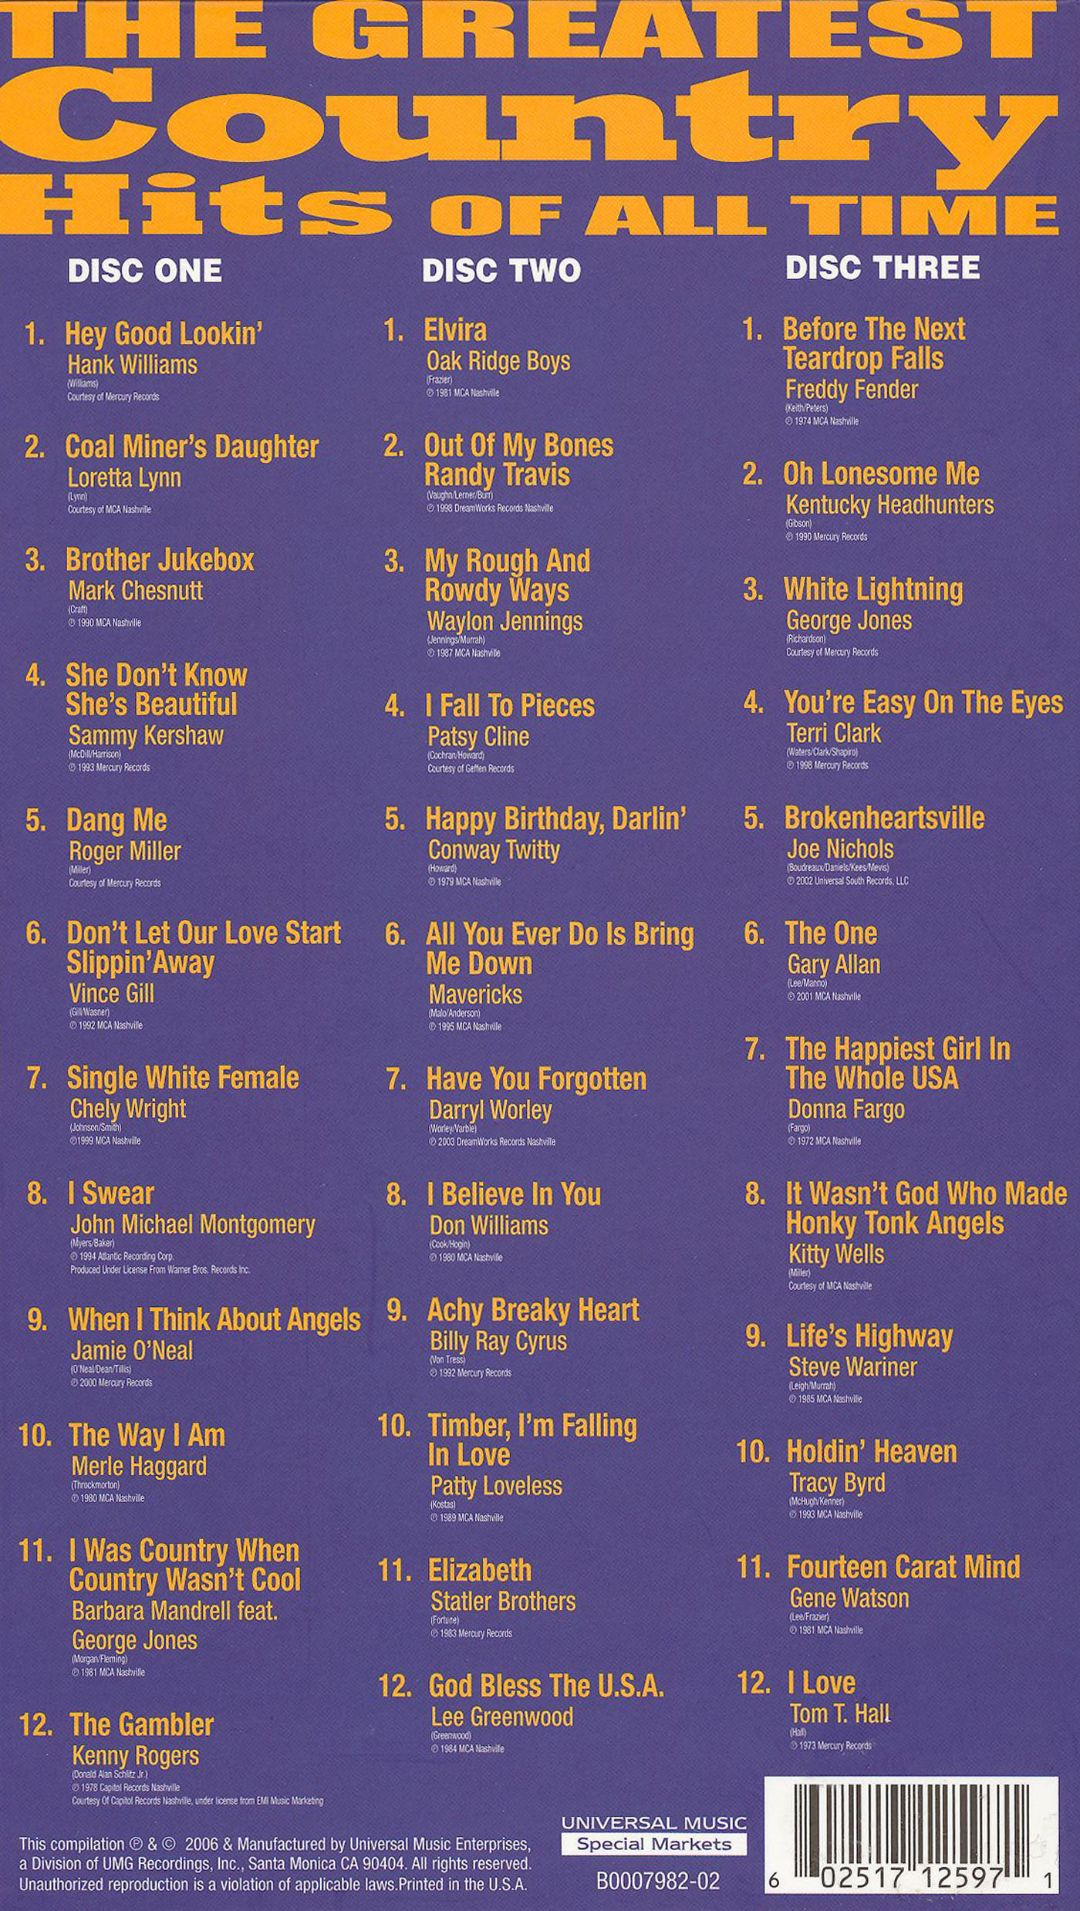 The greatest country hits of all time various artists songs the greatest country hits of all time hexwebz Images